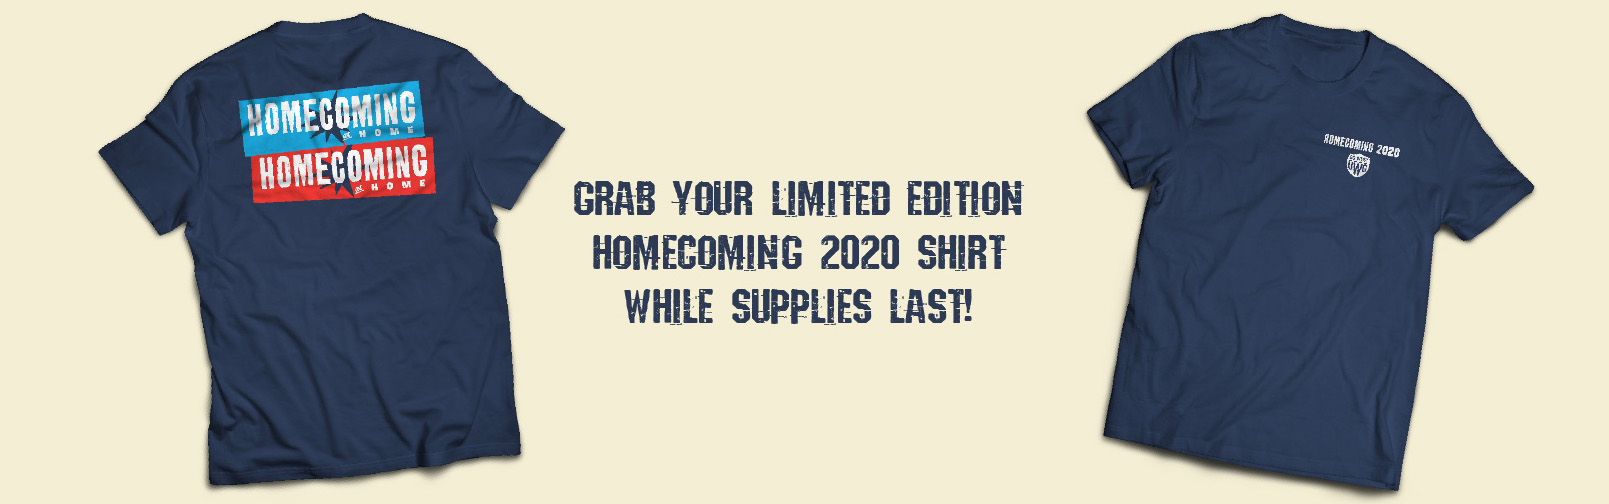 GRAB YOUR LIMITED EDITION HOMECOMING 2020 SHIRT WHILE SUPPLIES LAST!